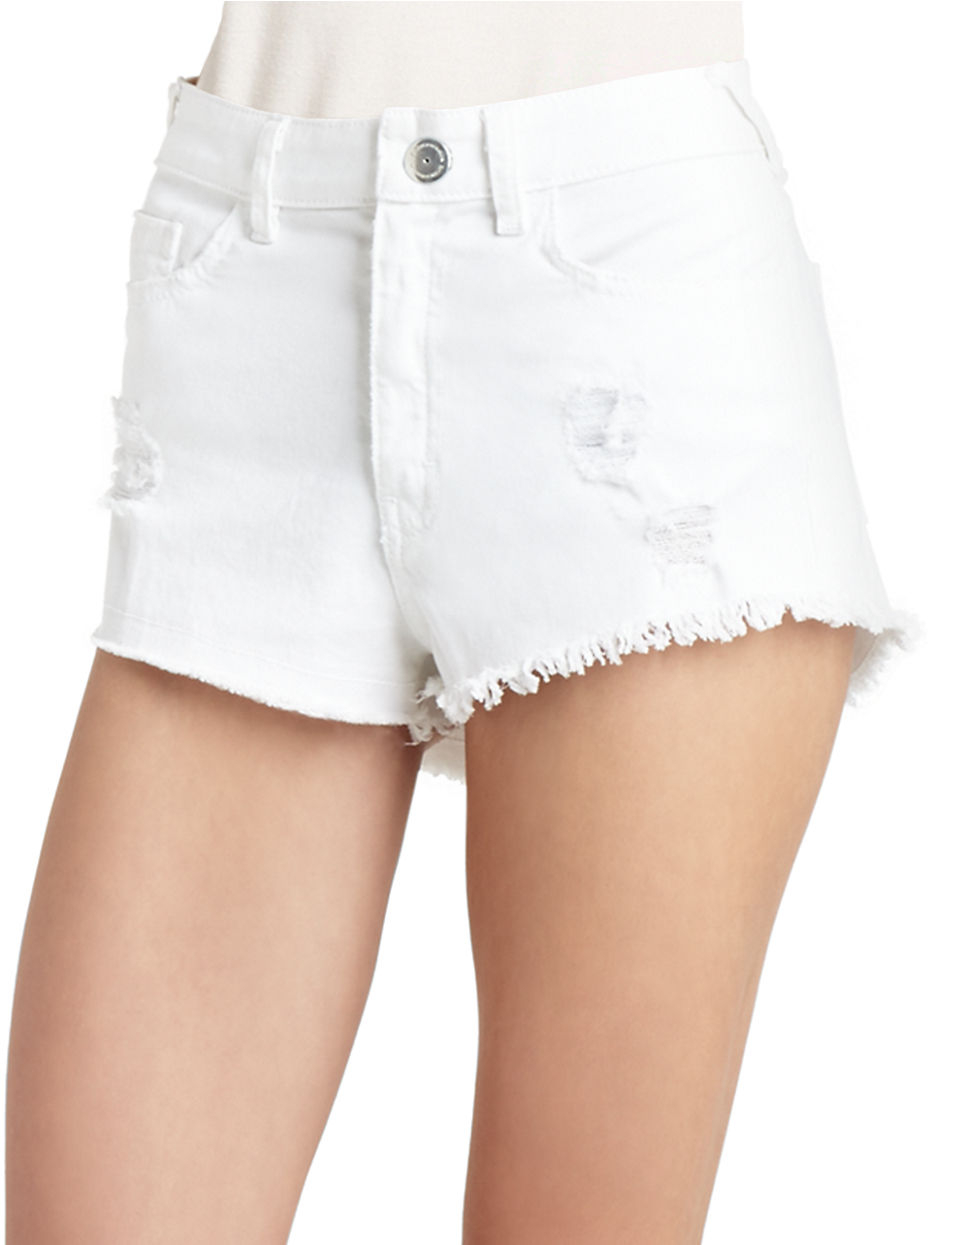 Forever 21's selection of plus size shorts offers options for every occasion, from working out to hanging out! Check out our selection on Forevercom!